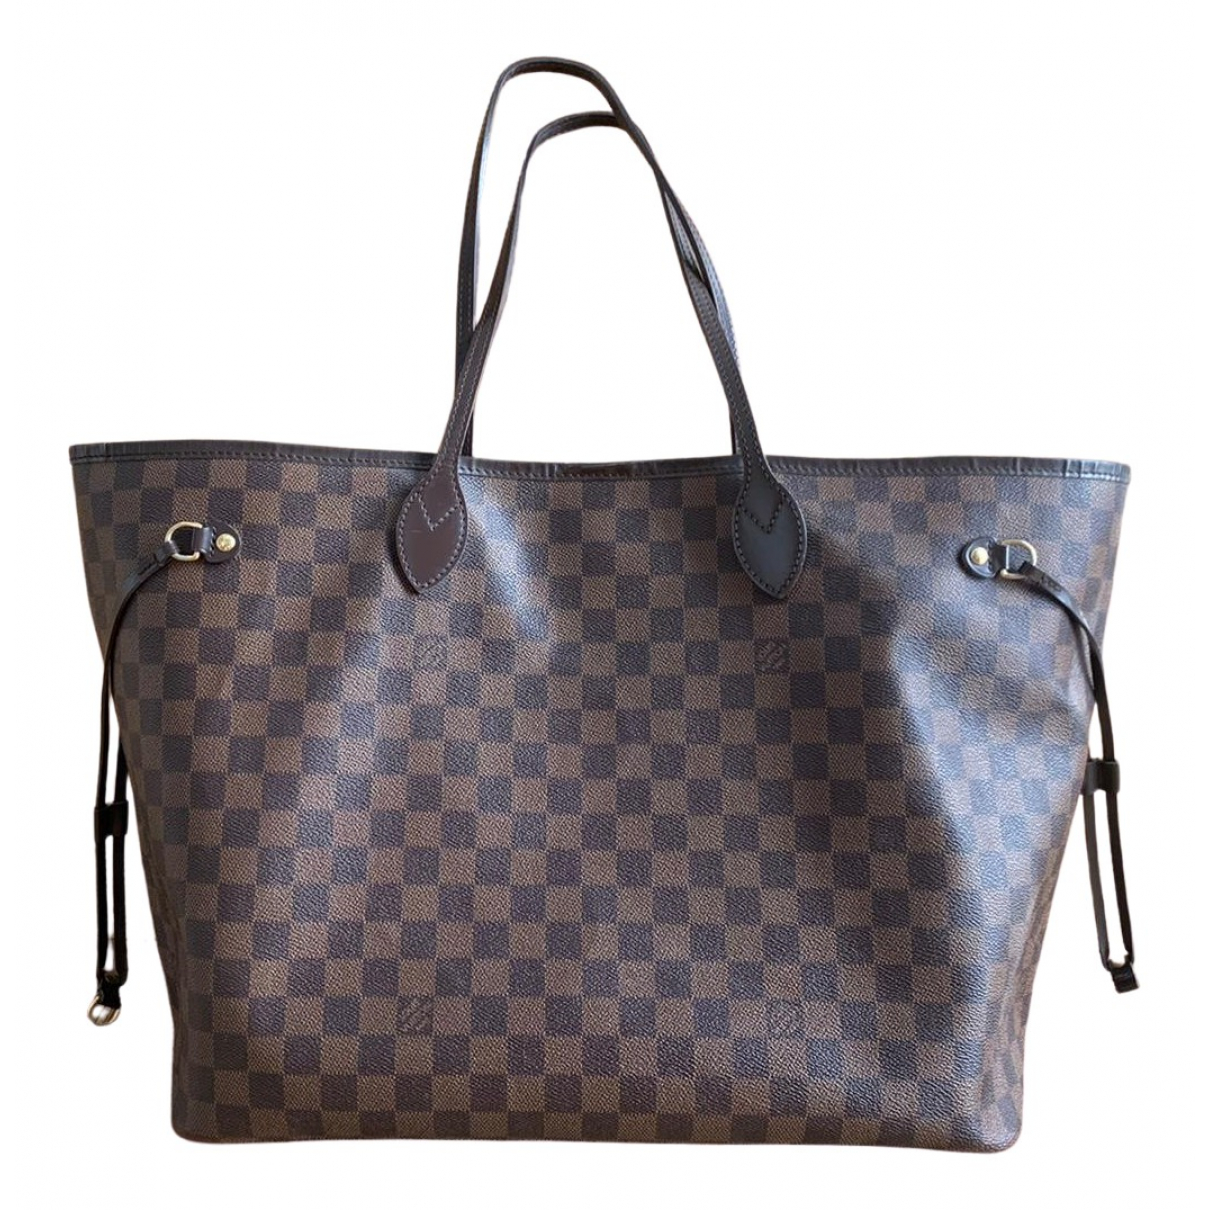 Louis Vuitton Neverfull Handtasche in  Braun Leinen